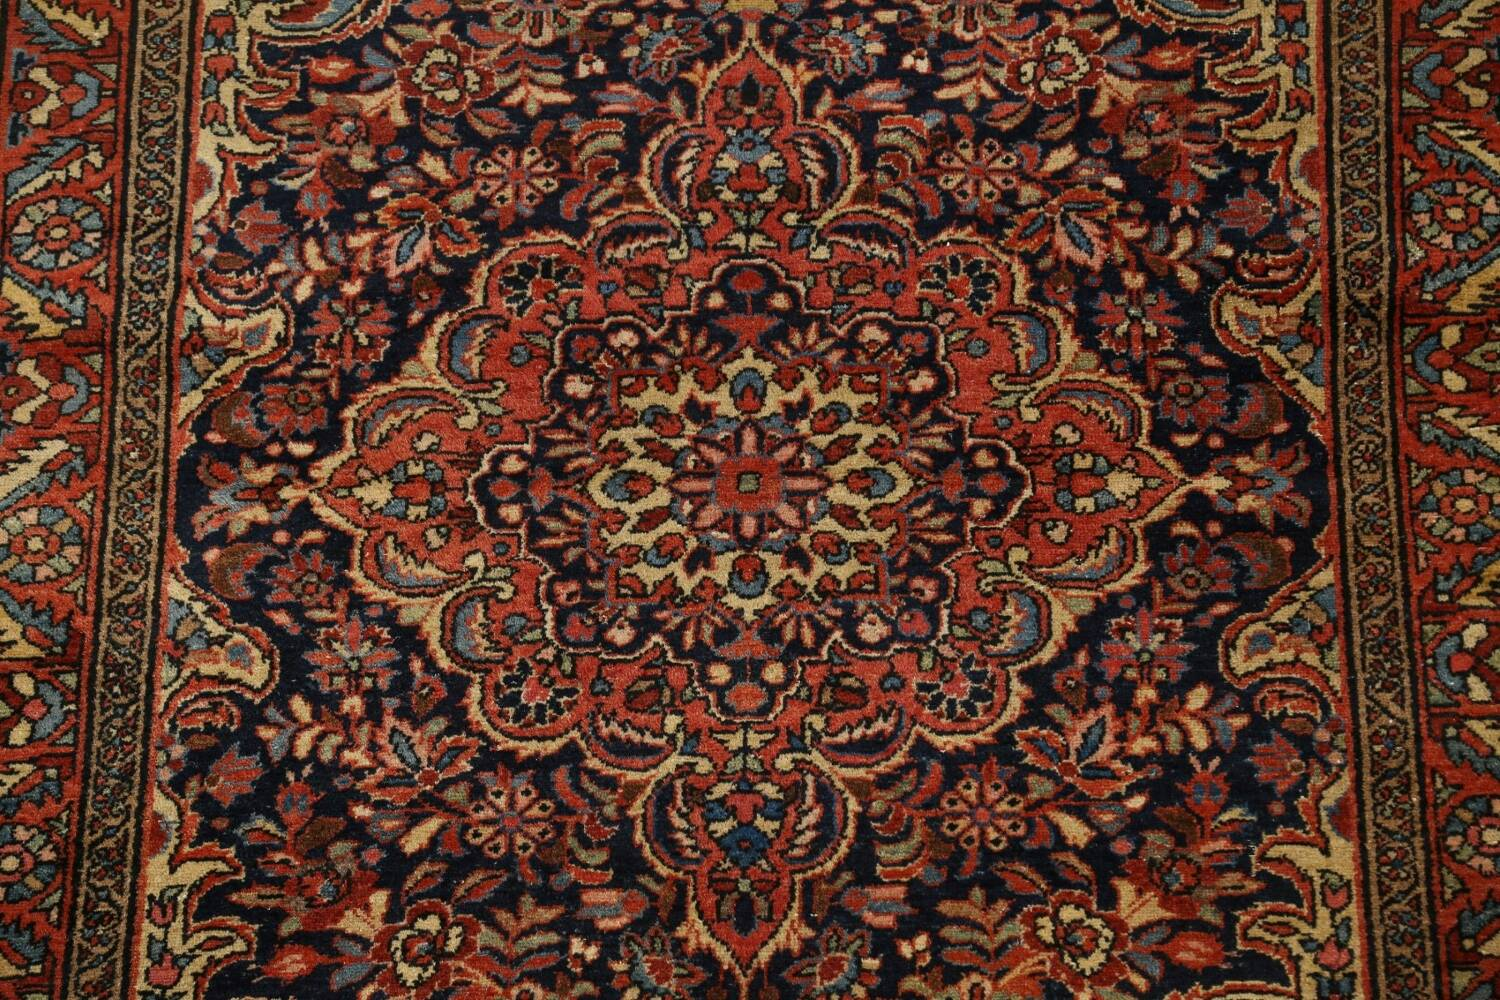 Antique Vegetable Dye Malayer Persian Area Rug 5x6 image 4